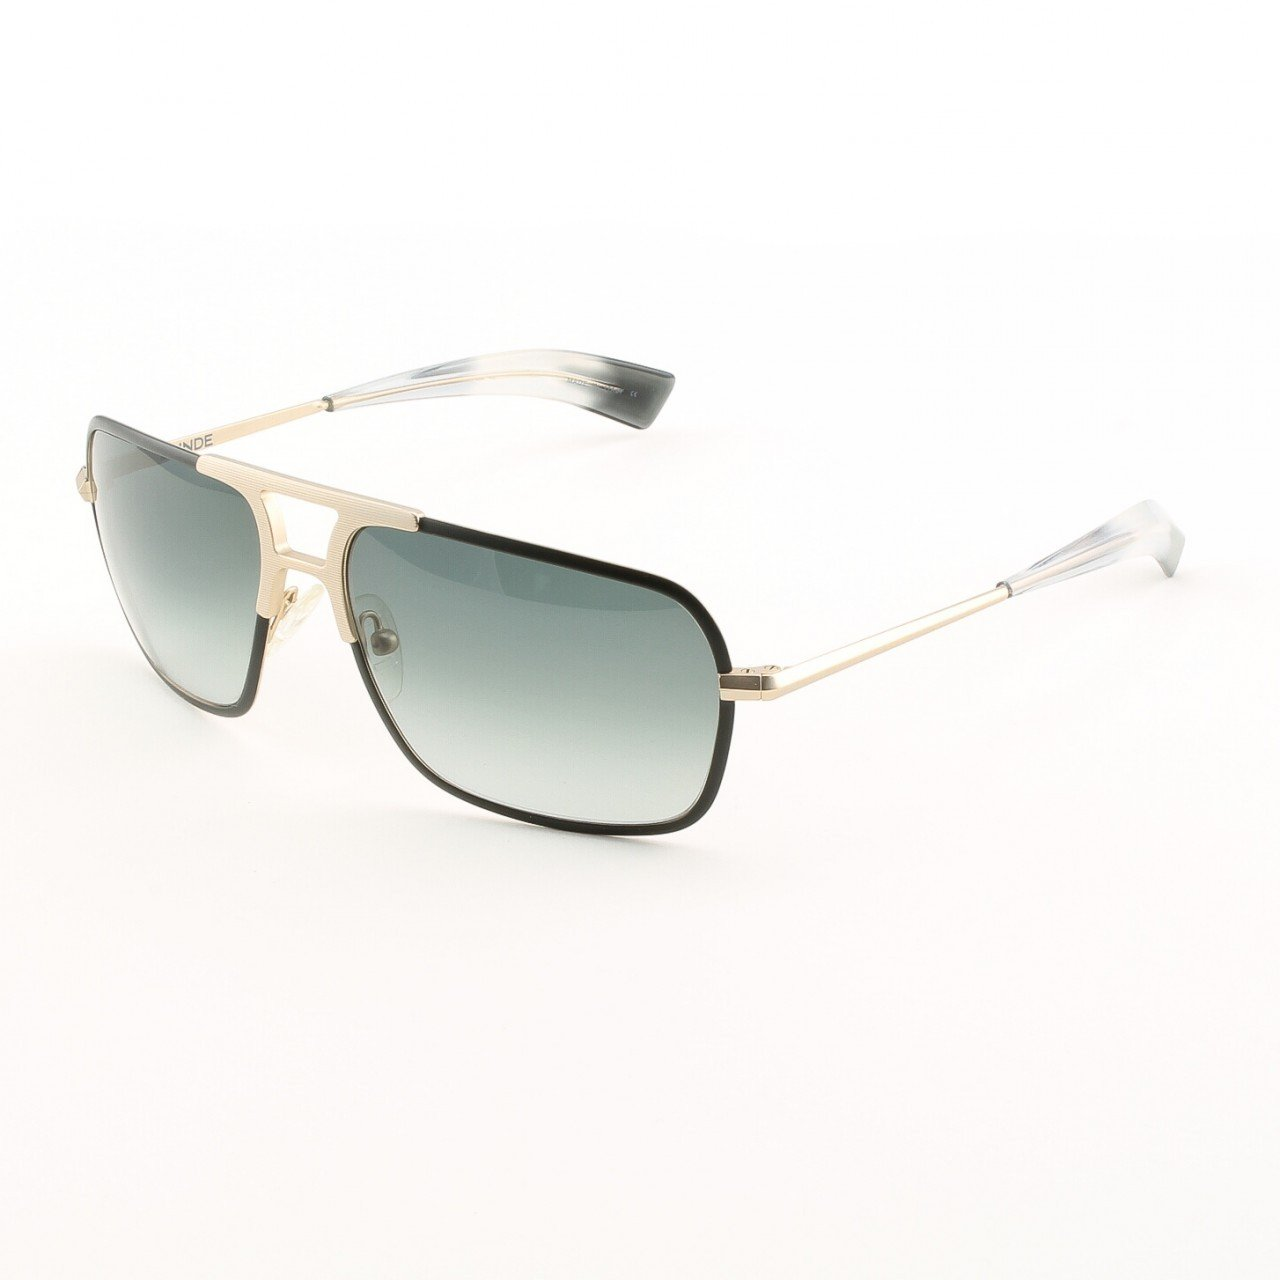 Blinde The Dean Unisex Sunglasses Col. Matte Black and Gold with Grey Gradient Lenses